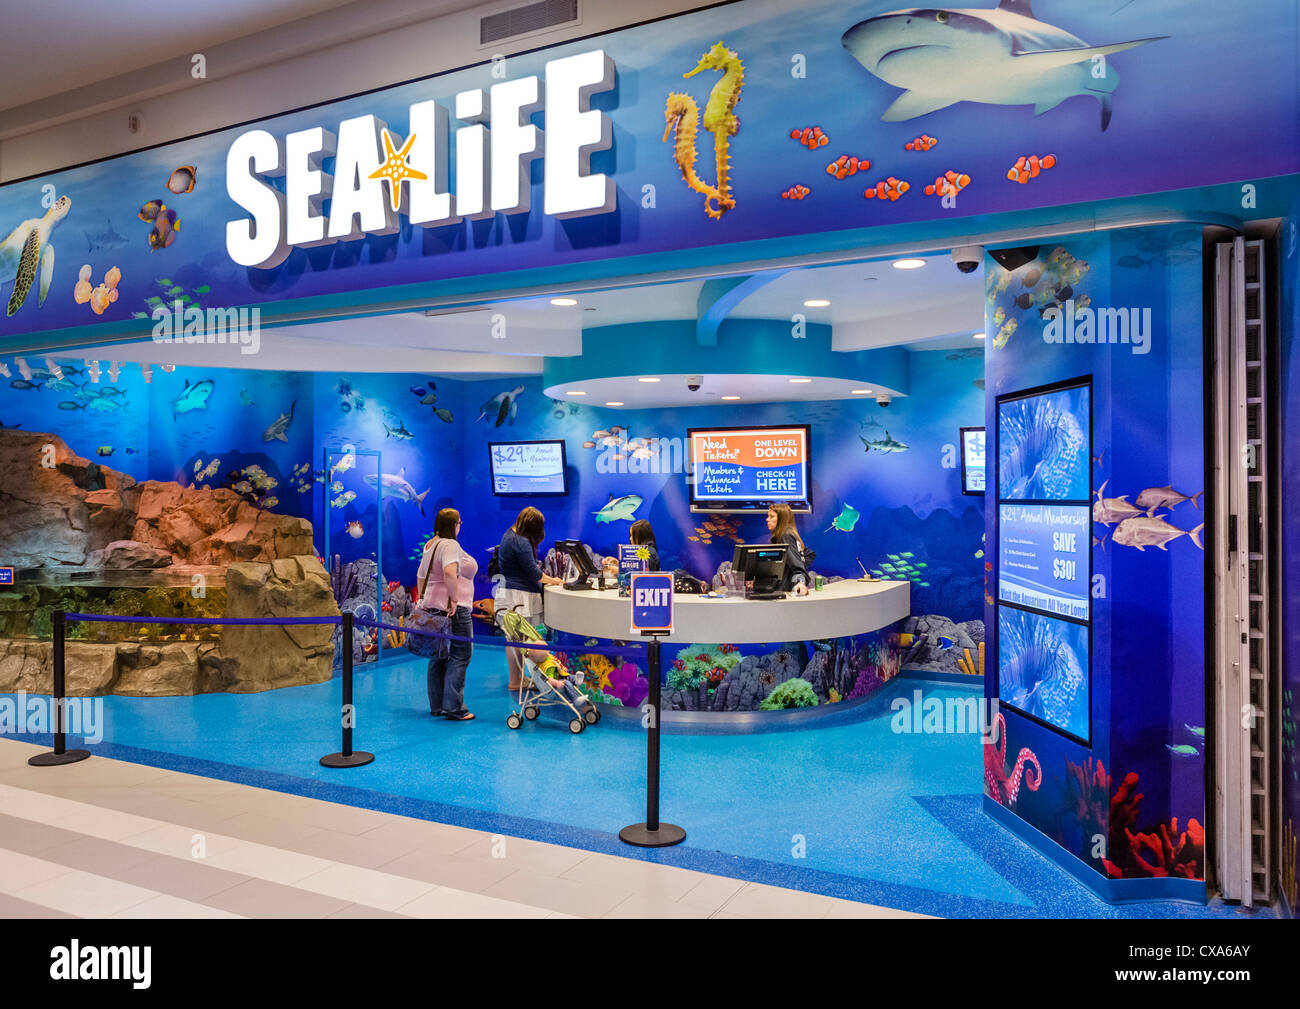 Ticket desk at the Sea Life Aquarium in the Mall of America, Bloomington, Minneapolis, Minnesota, USA - Stock Image